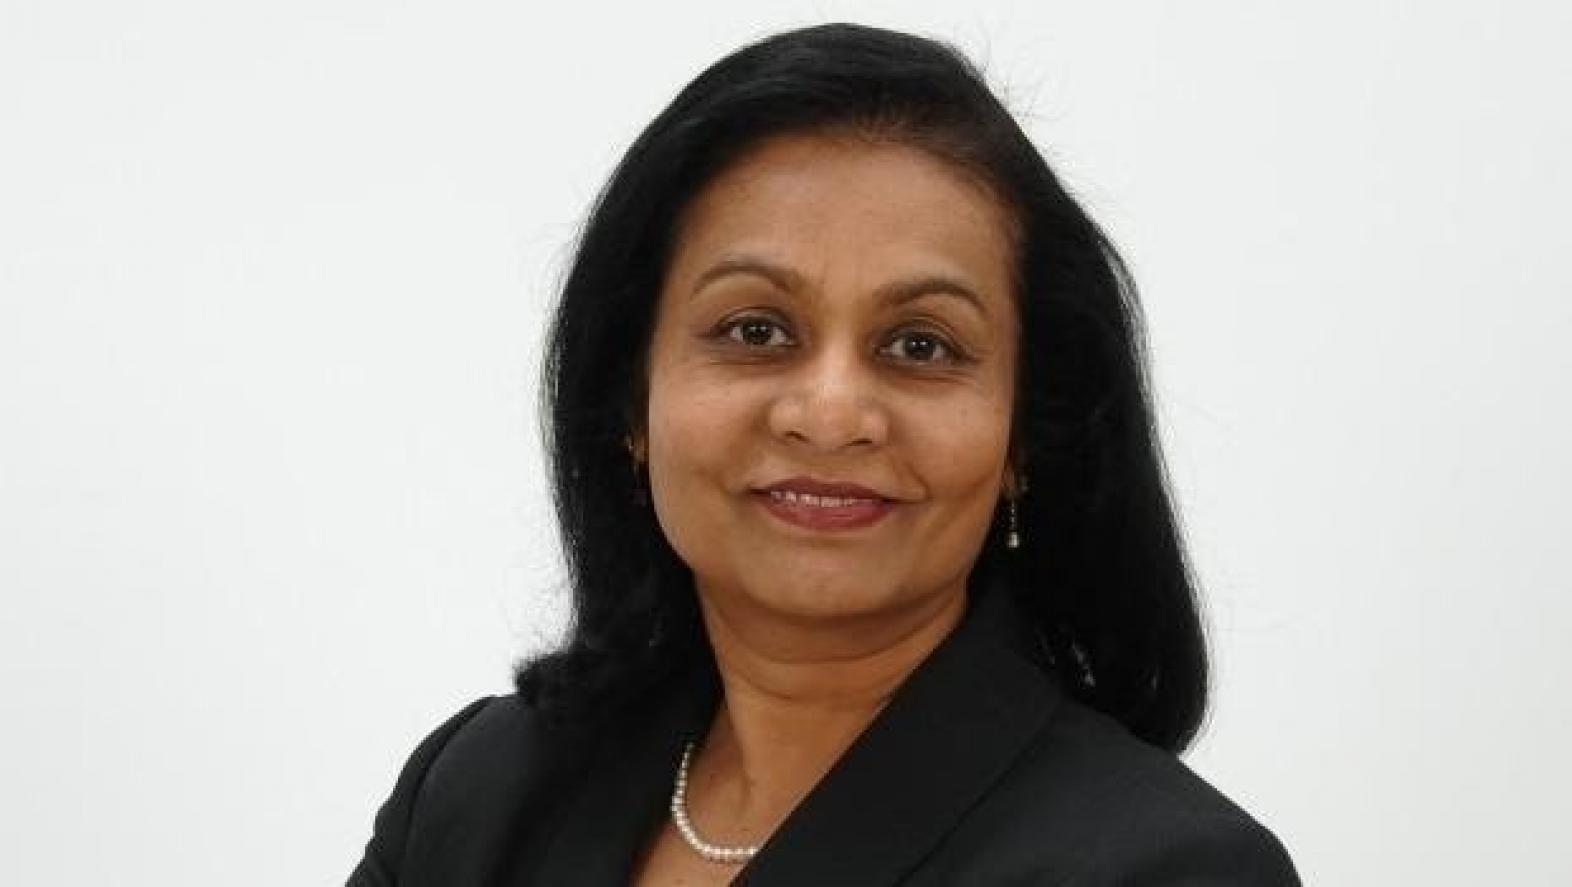 Underwriters Laboratories Research Director Judy Jeevarajan, Ph.D.